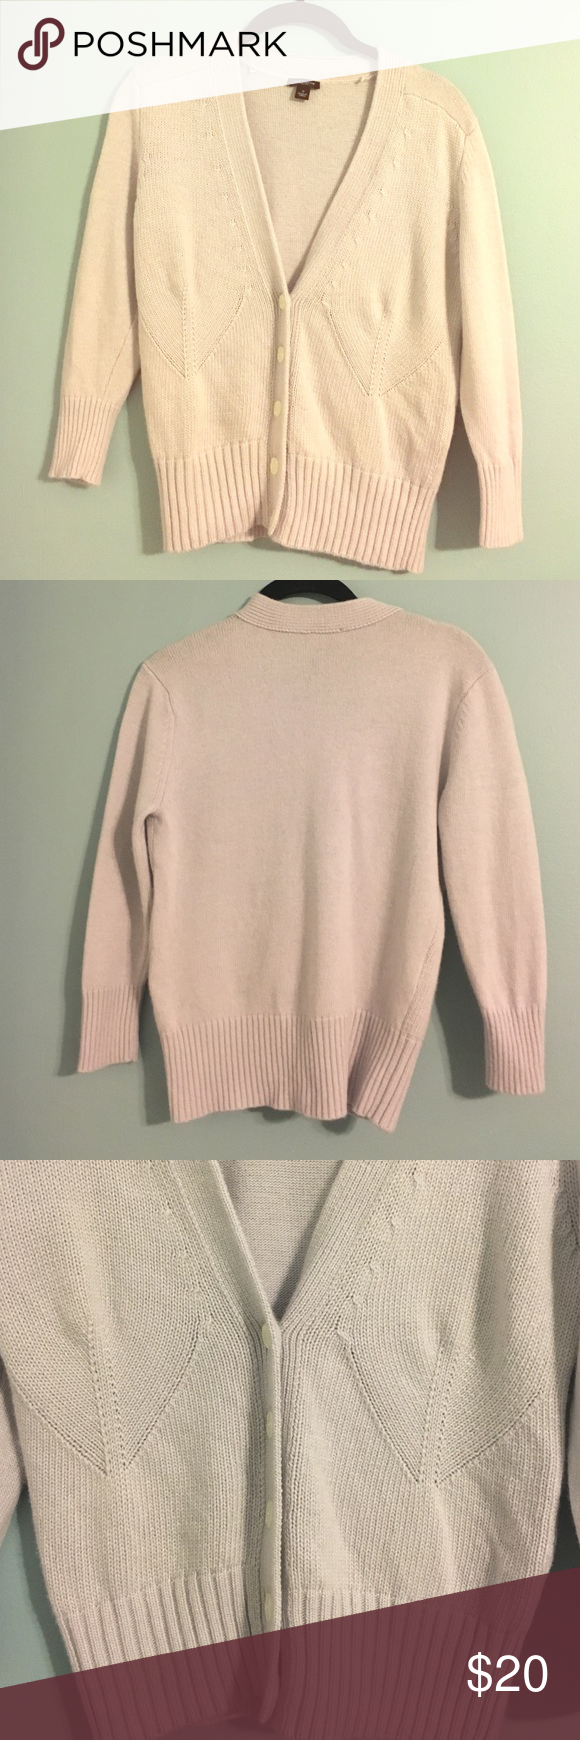 Ann Taylor purple cropped cardigan sweater Sz S | Shoulder